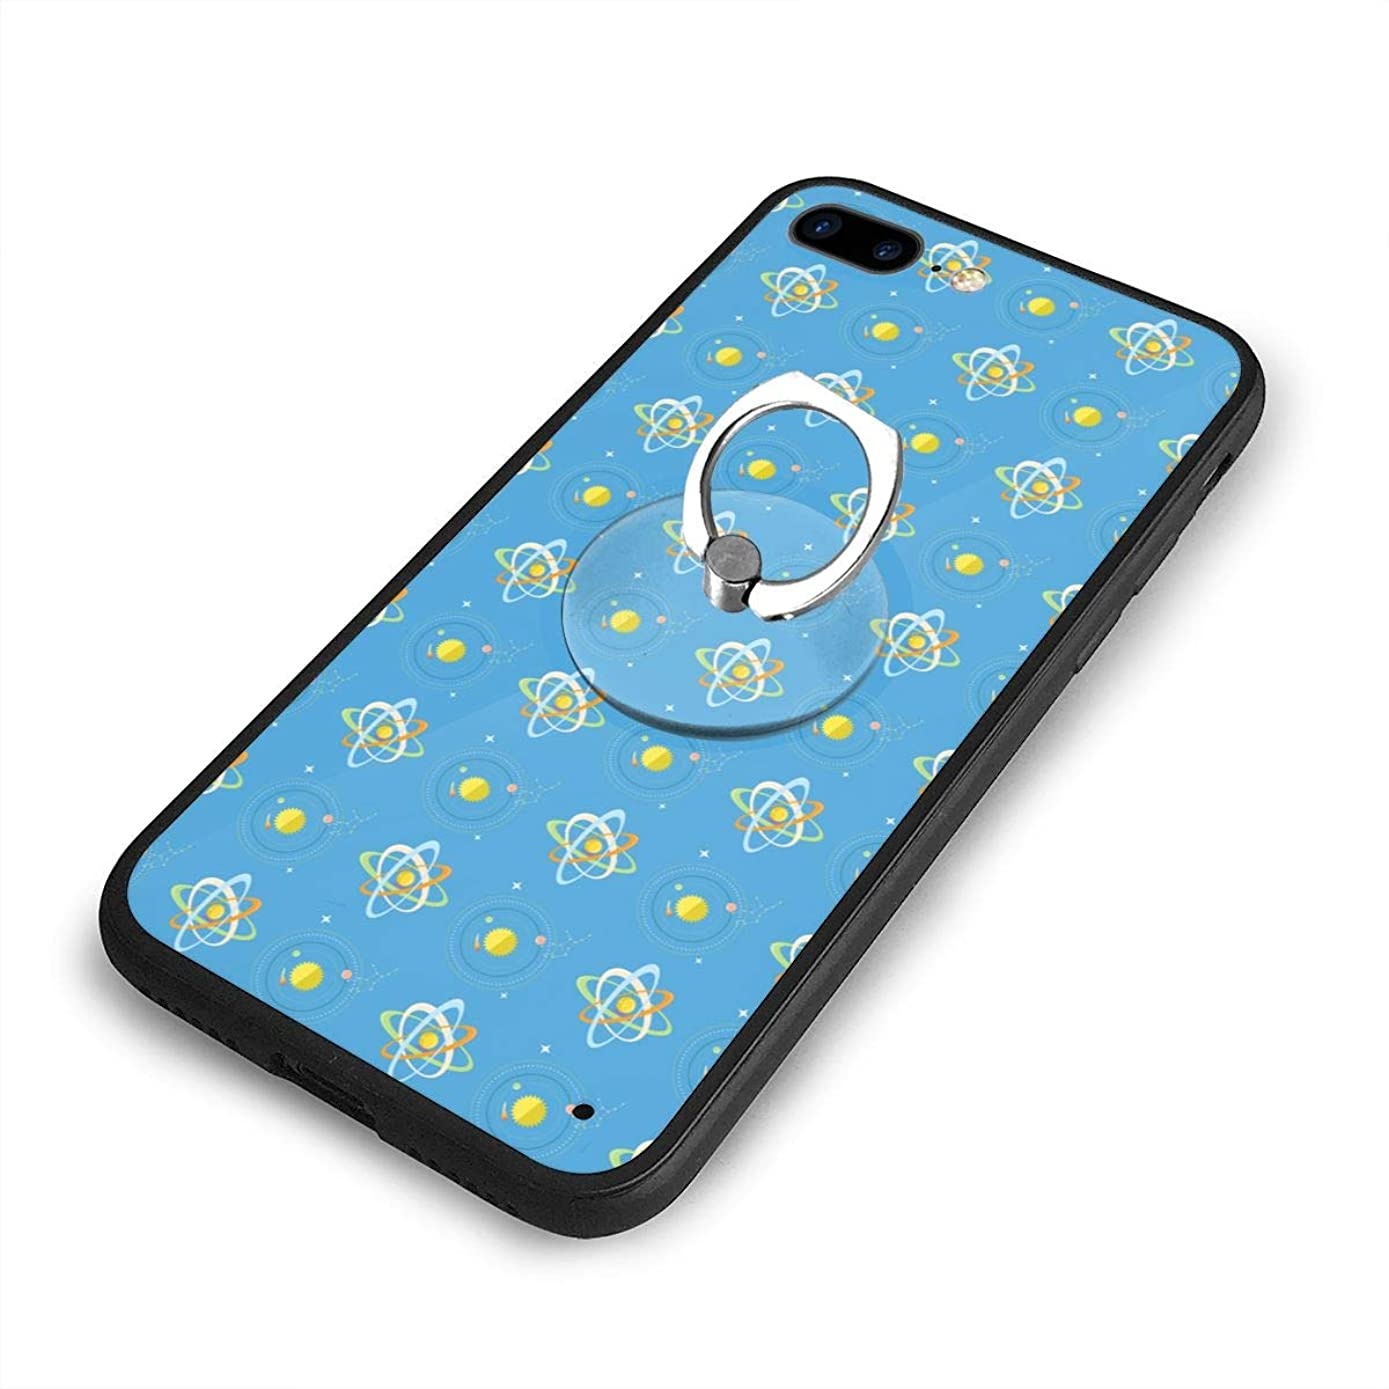 iPhone 7/8 Plus Case Bright Solar System and Planets Rotating Blue 360 Degree Rotating Ring Kickstand Case Shockproof Anti-Scratch Impact Protection Function for iPhone 7/8 Plus